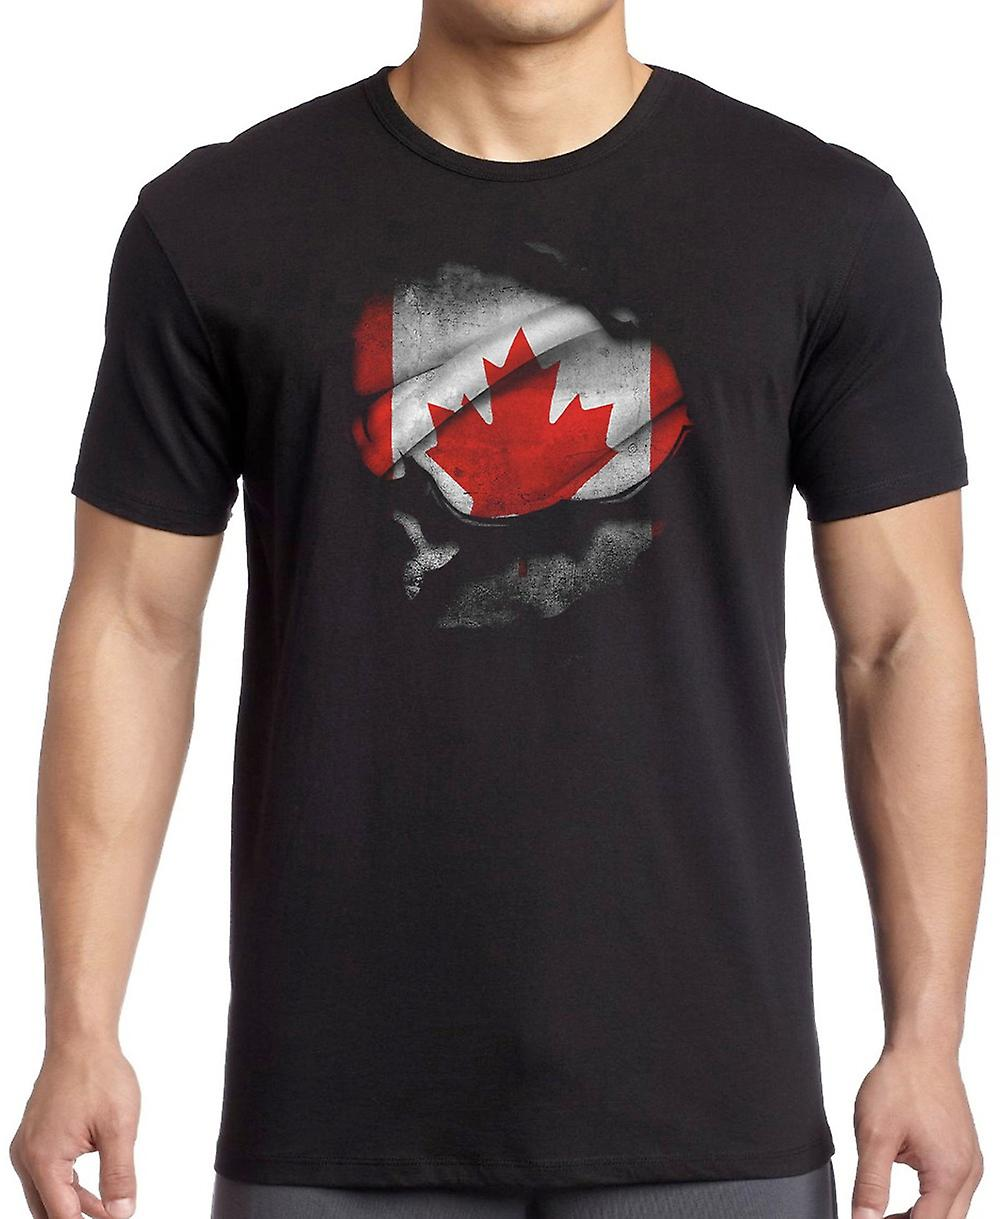 Canadian Canada Ripped Effect Under Shirt Women T Shirt